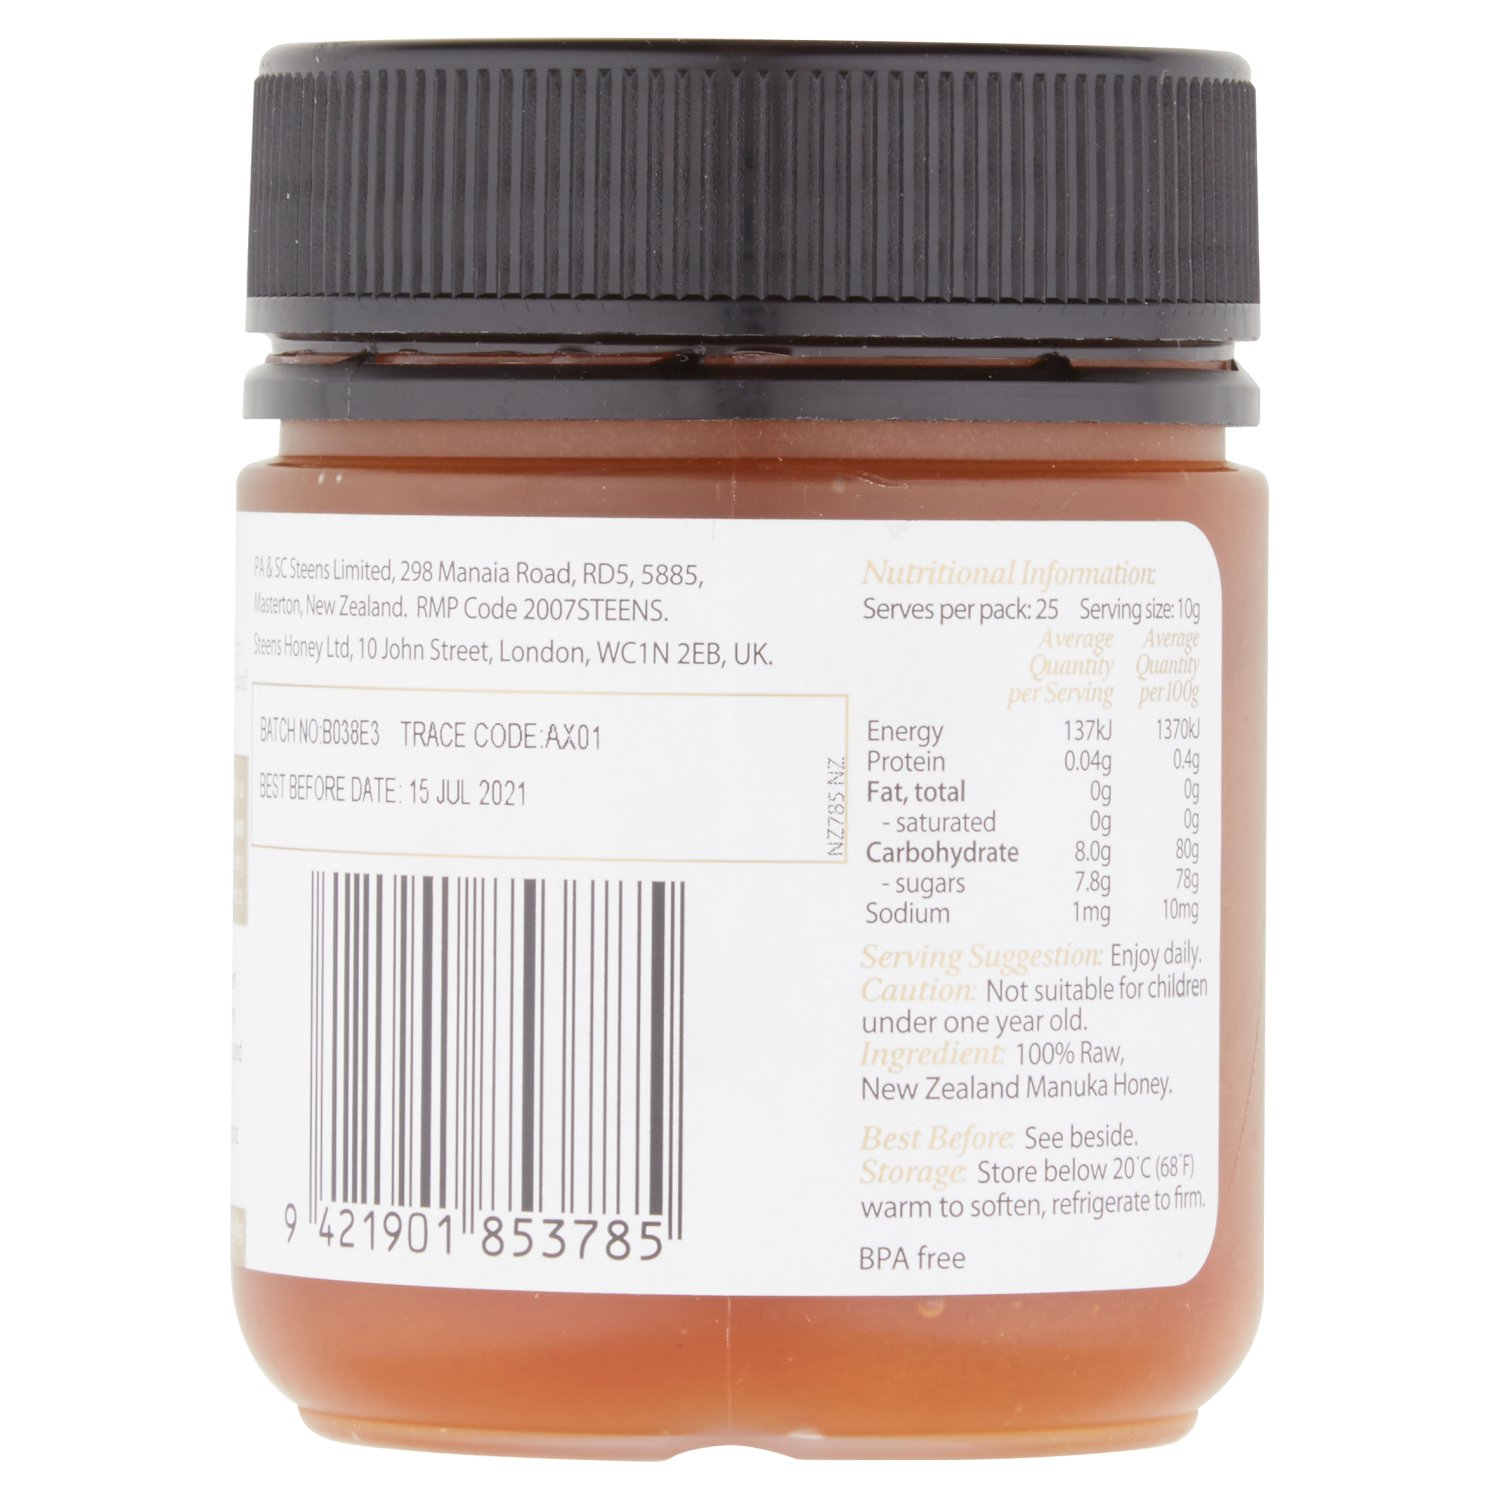 Steens UMF 24 Manuka Honey (MGO 1122) 8.8 Ounce jar with box | Raw Unpasteurized Honey From New Zealand | Traceability Code on Each Label by Steens (Image #3)